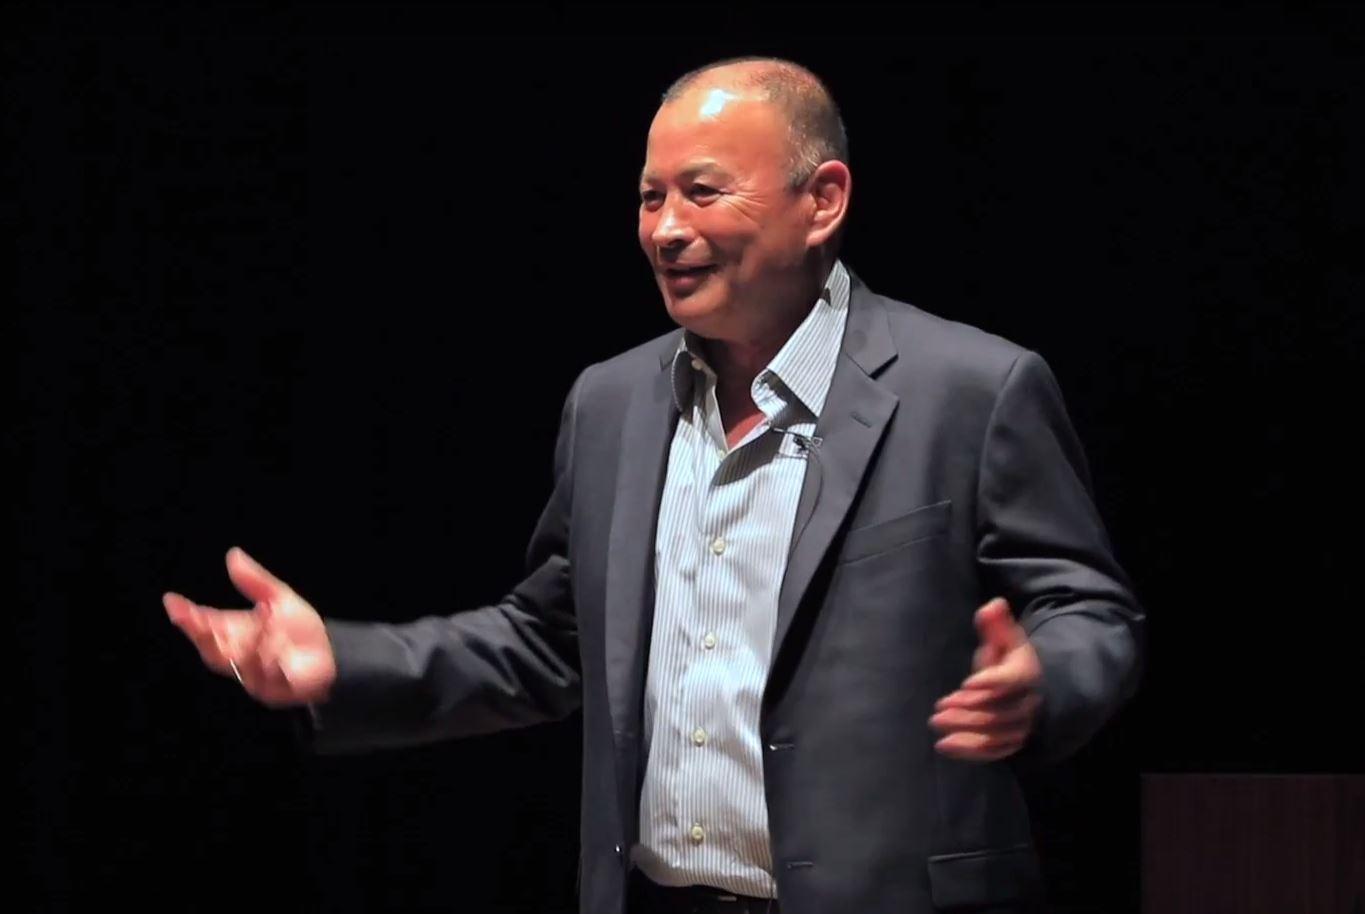 England coach Eddie Jones has an acid tongue and just doesn't know when to zip it